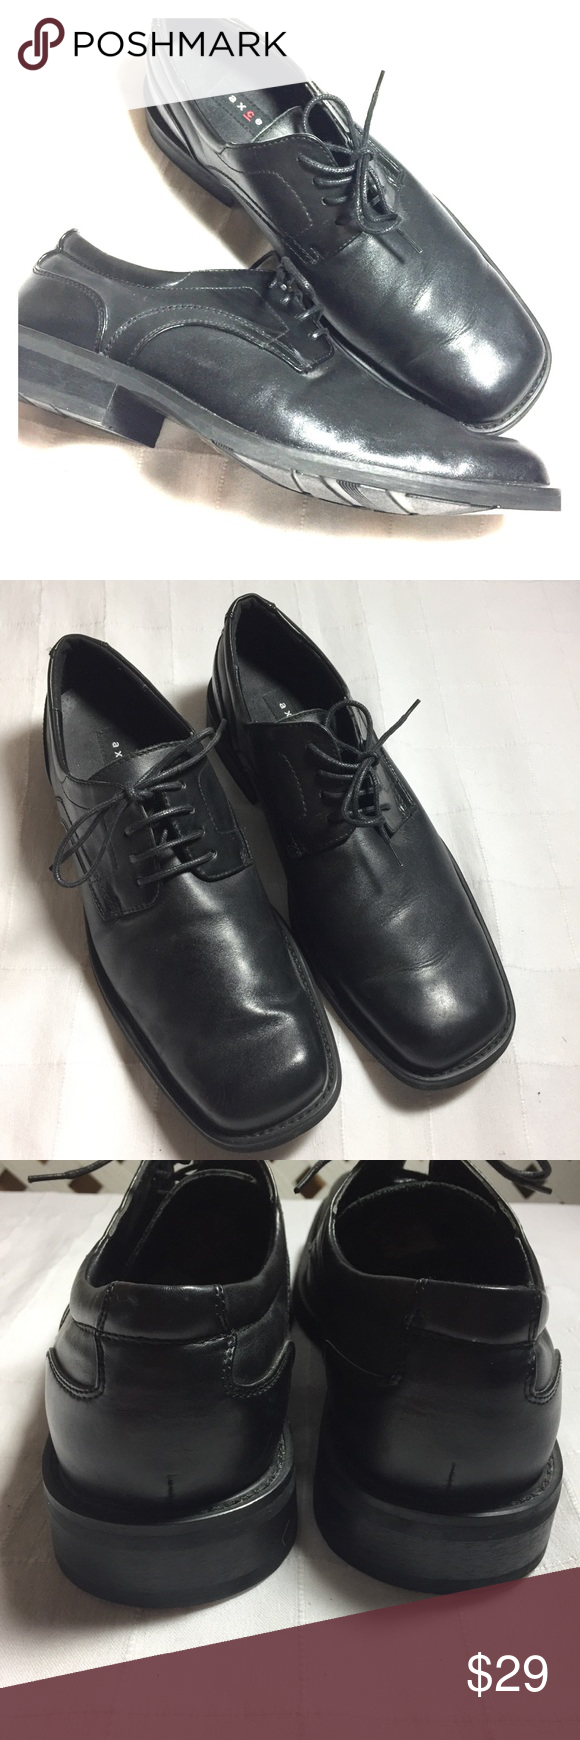 Axcess Mens Black Dress Shoes 10 Worn Once Mens Black Dress Shoes Black Dress Shoes Dress Shoes [ 1740 x 580 Pixel ]